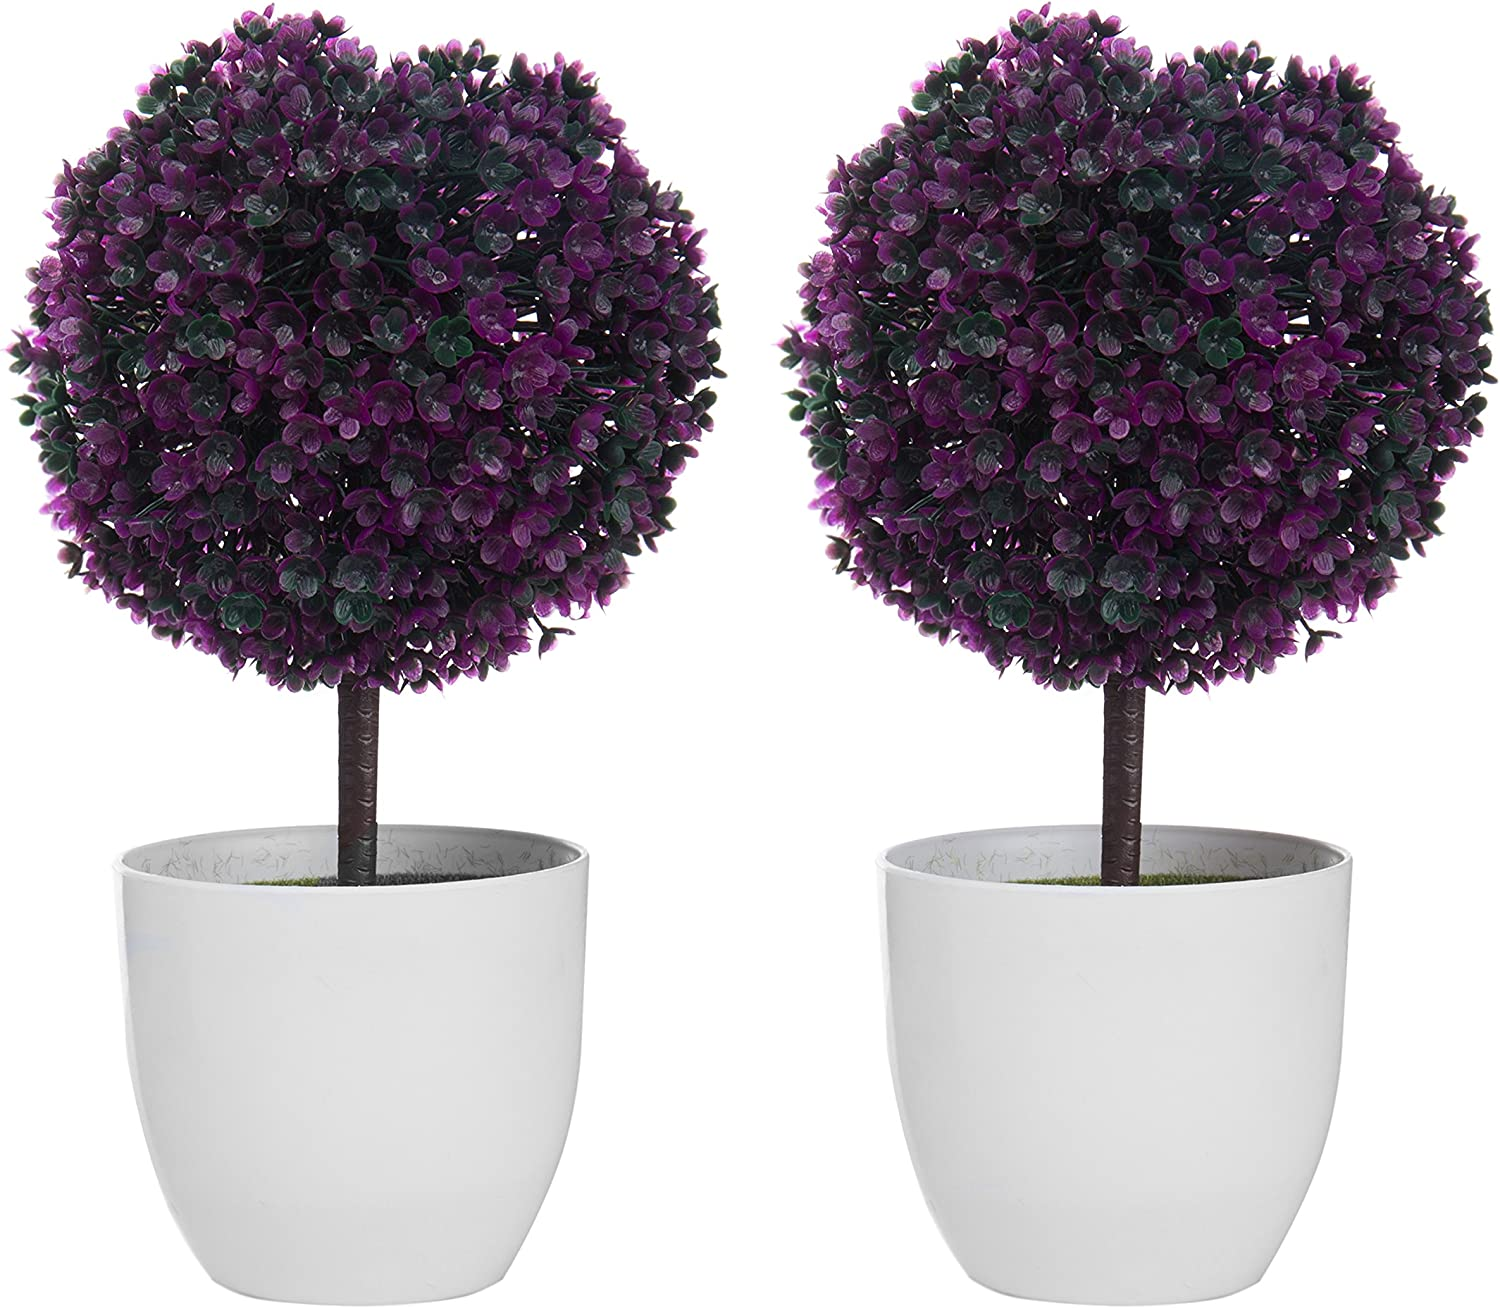 Amazon Com Mygift Set Of 2 Artificial Faux Potted Tabletop Purple Flower Plant Topiary W White Planter Pots Home